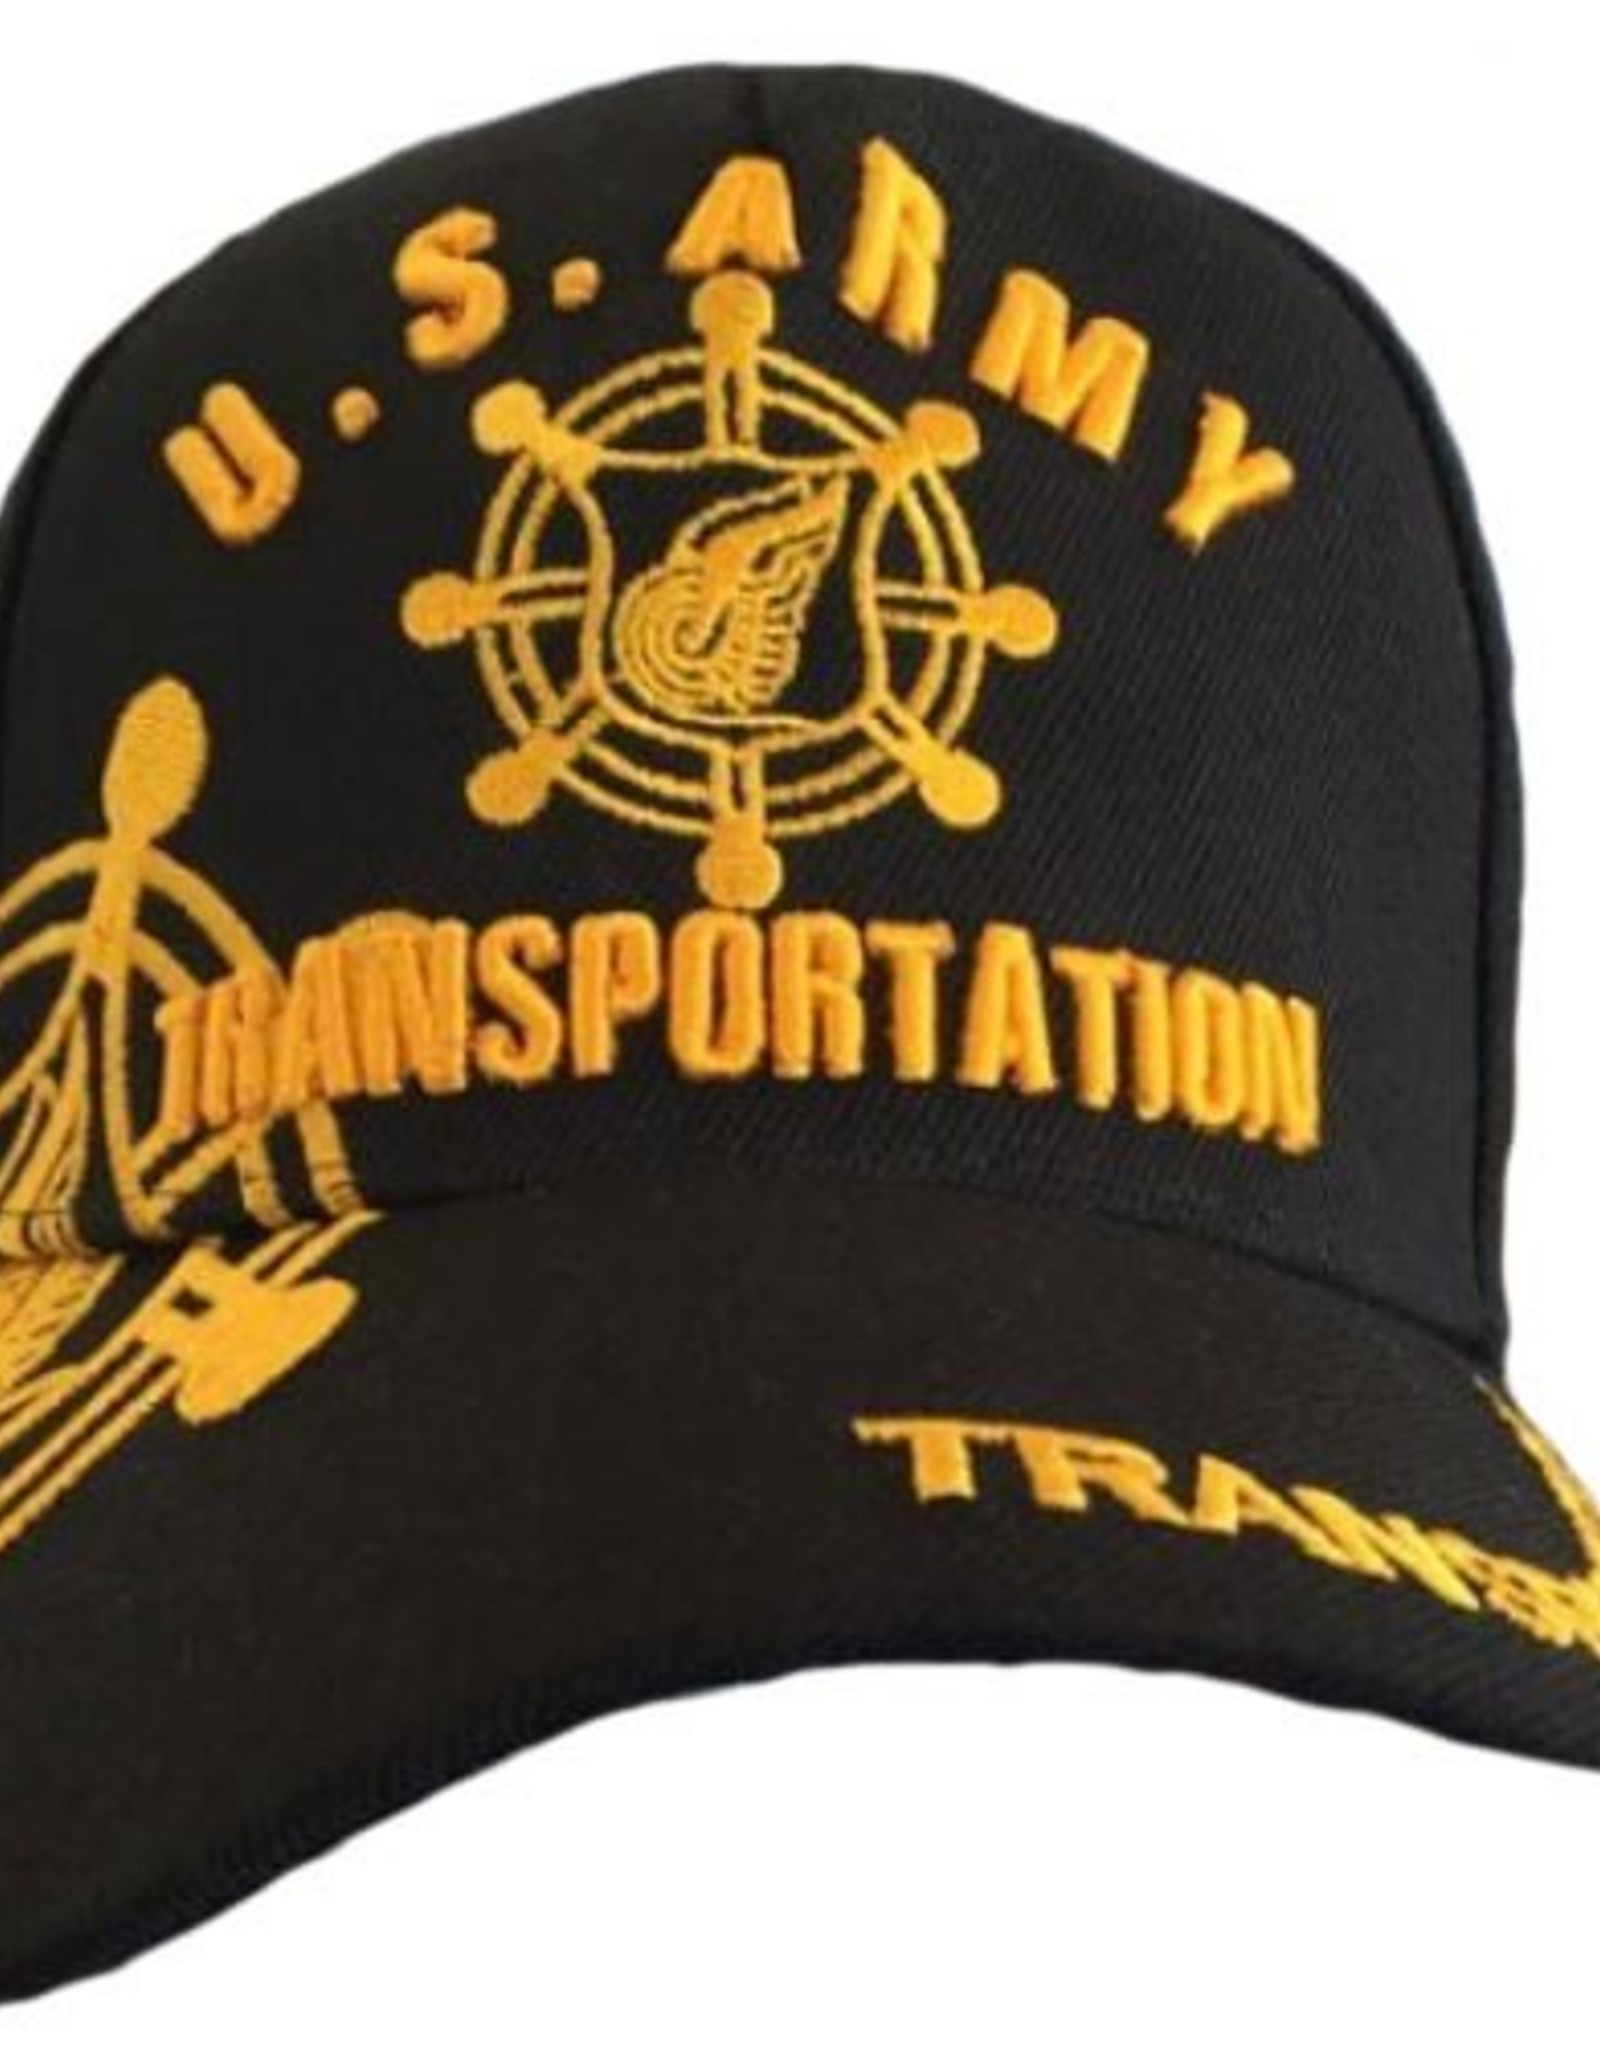 MidMil Army Transportation Hat with Over Shadow Black